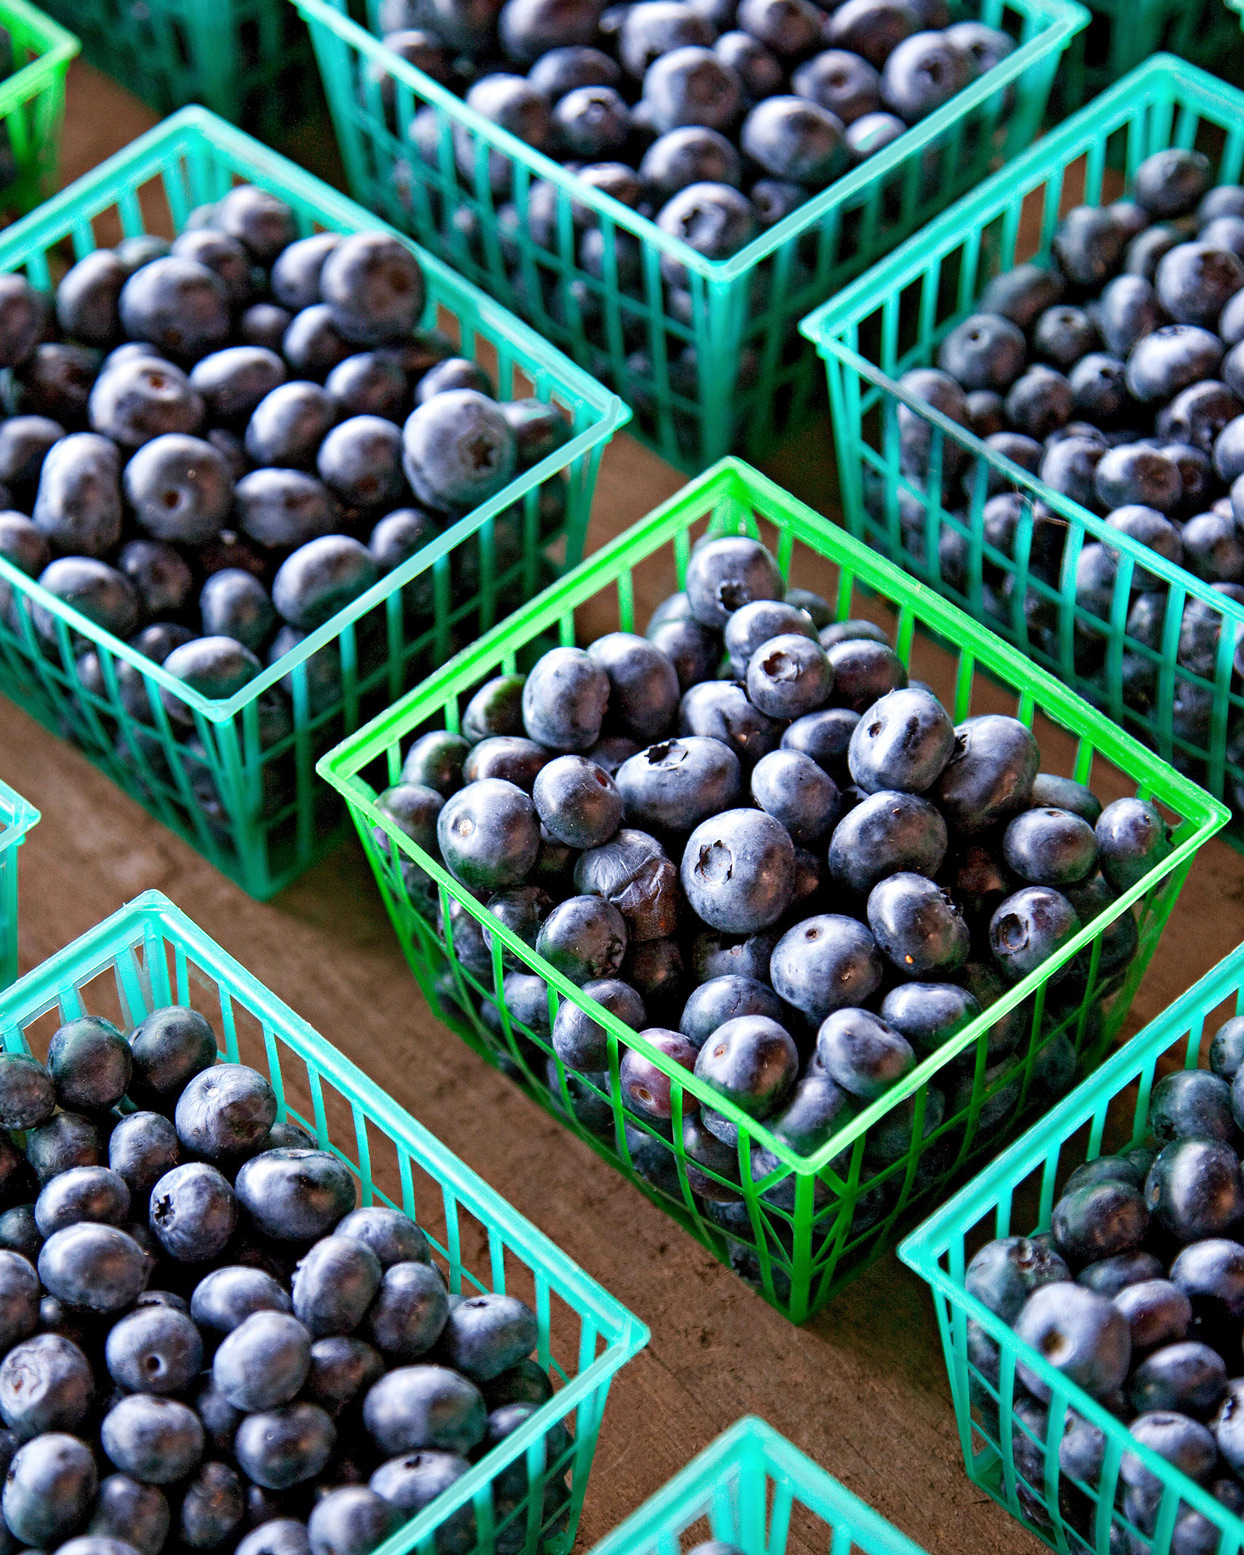 blueberries produce baskets